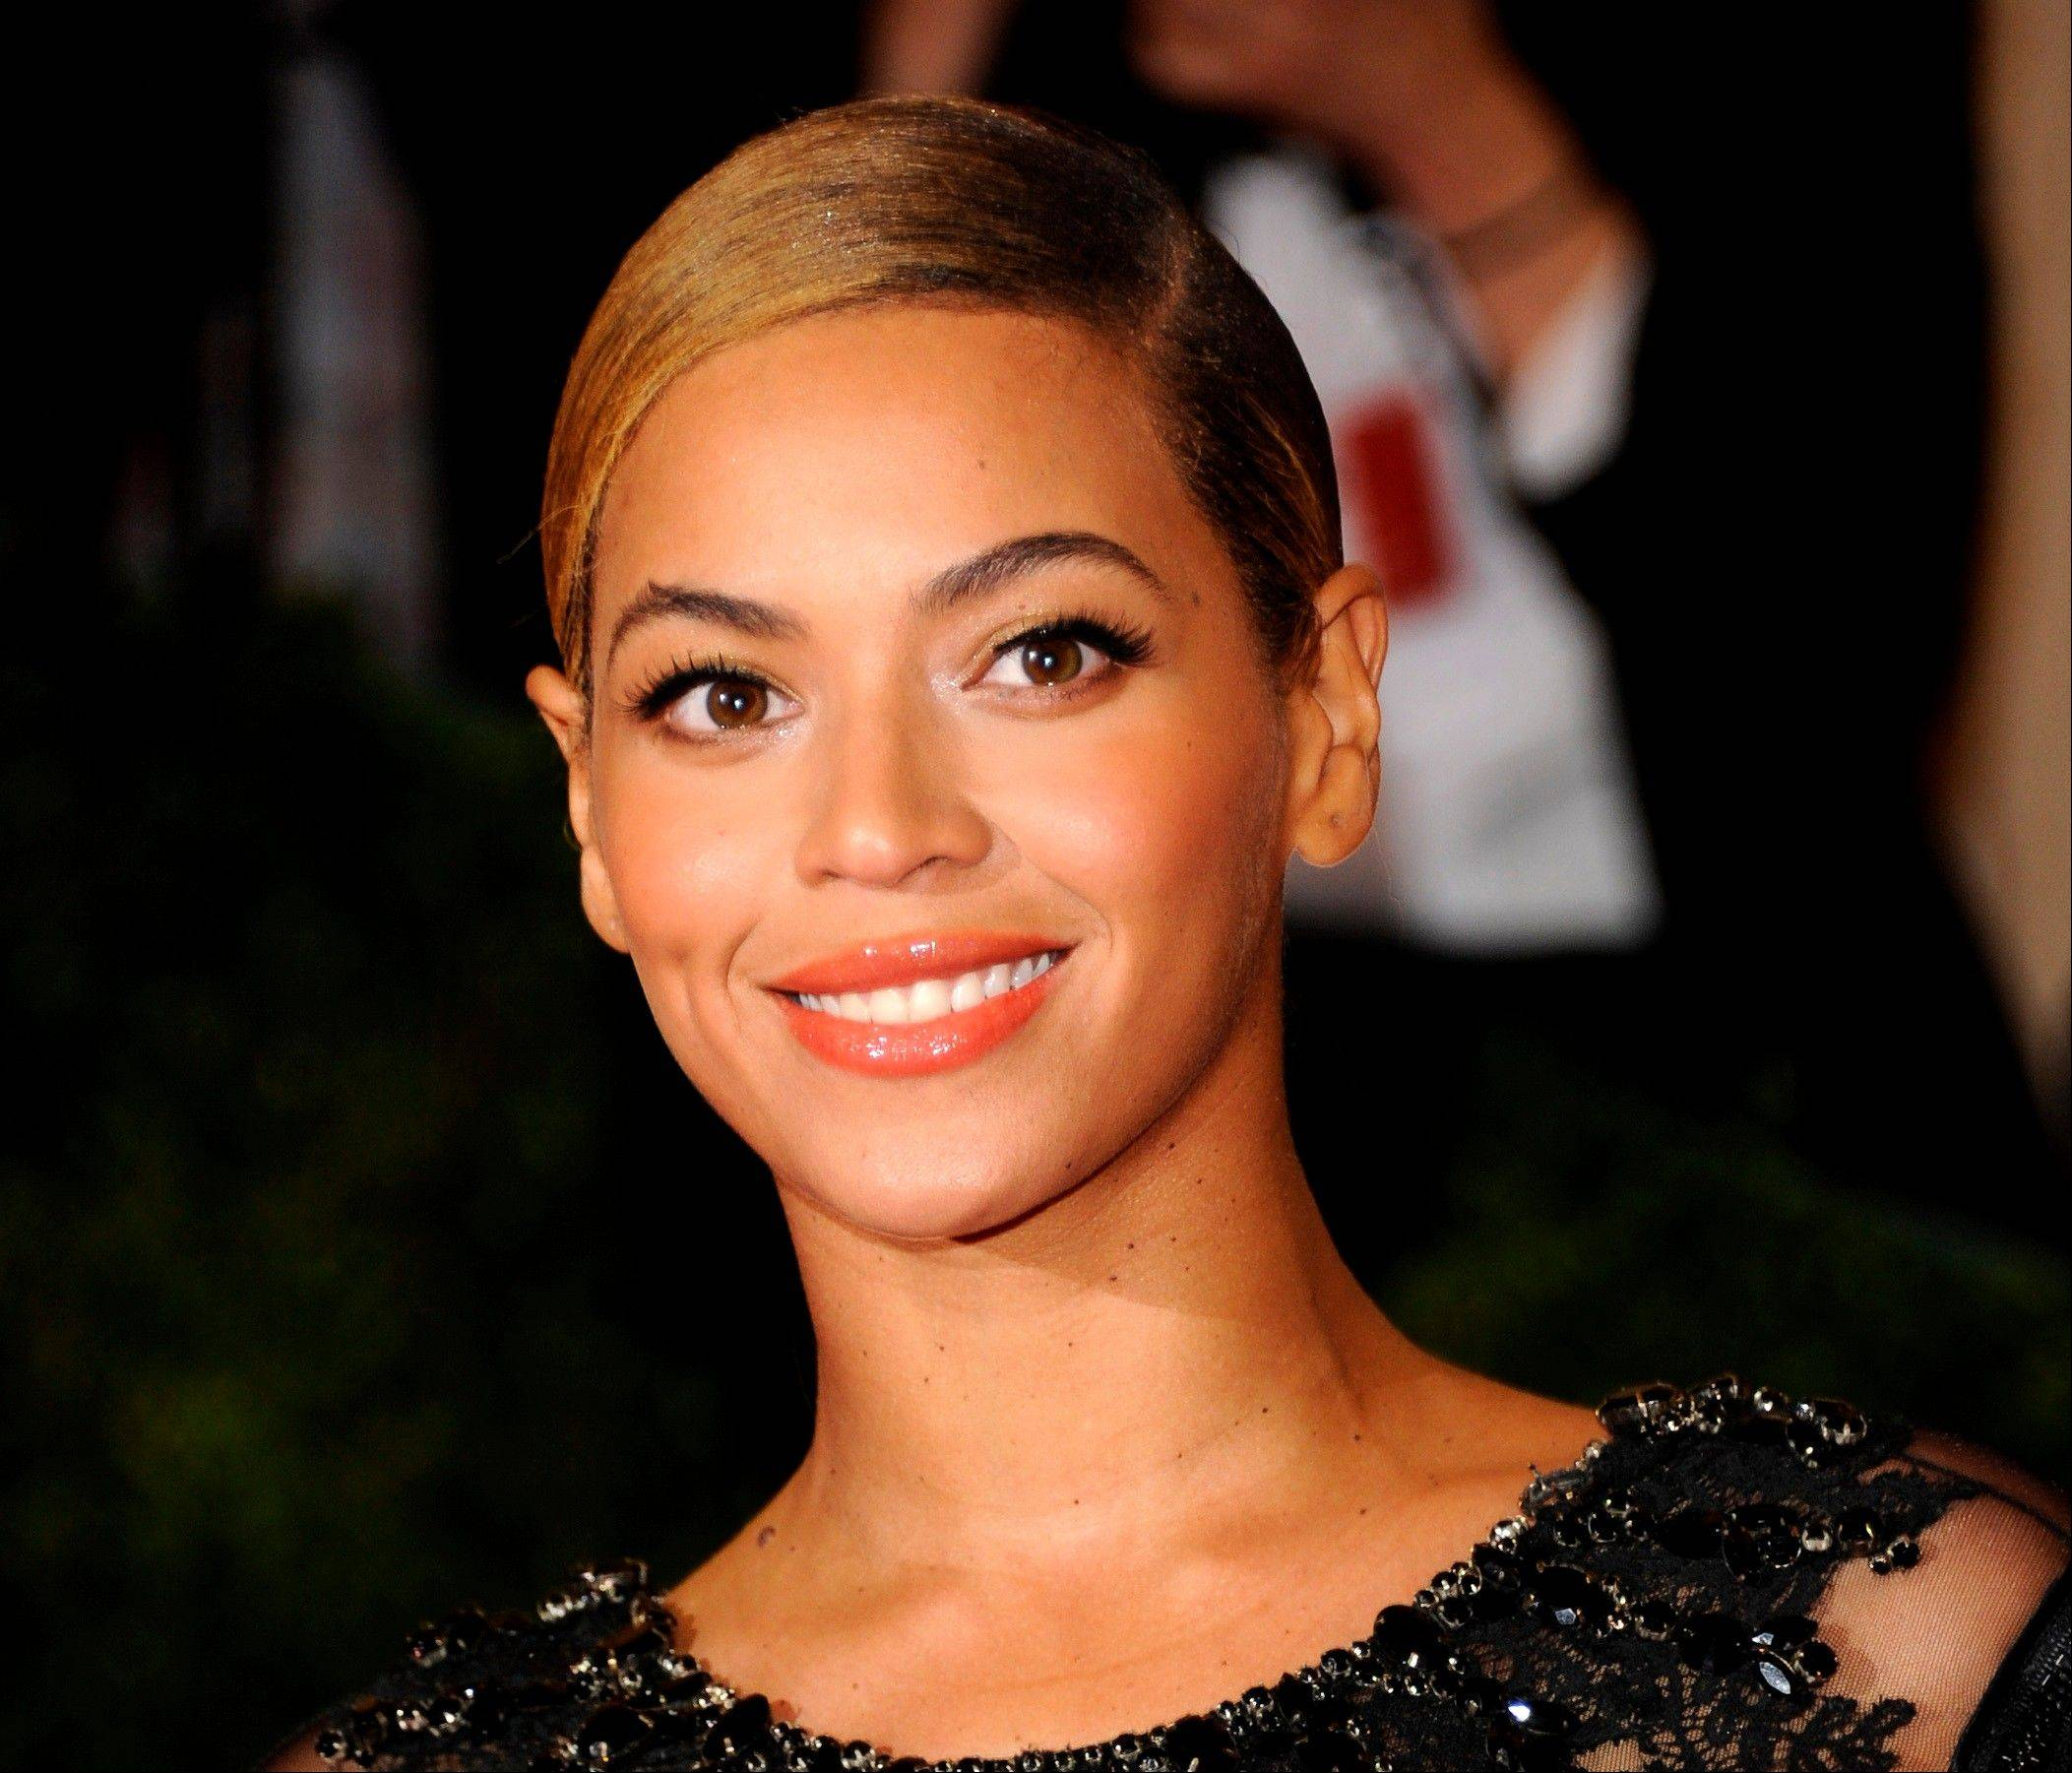 Beyoncé will sing the national anthem at President Barack Obama's inauguration ceremony on Jan. 21.